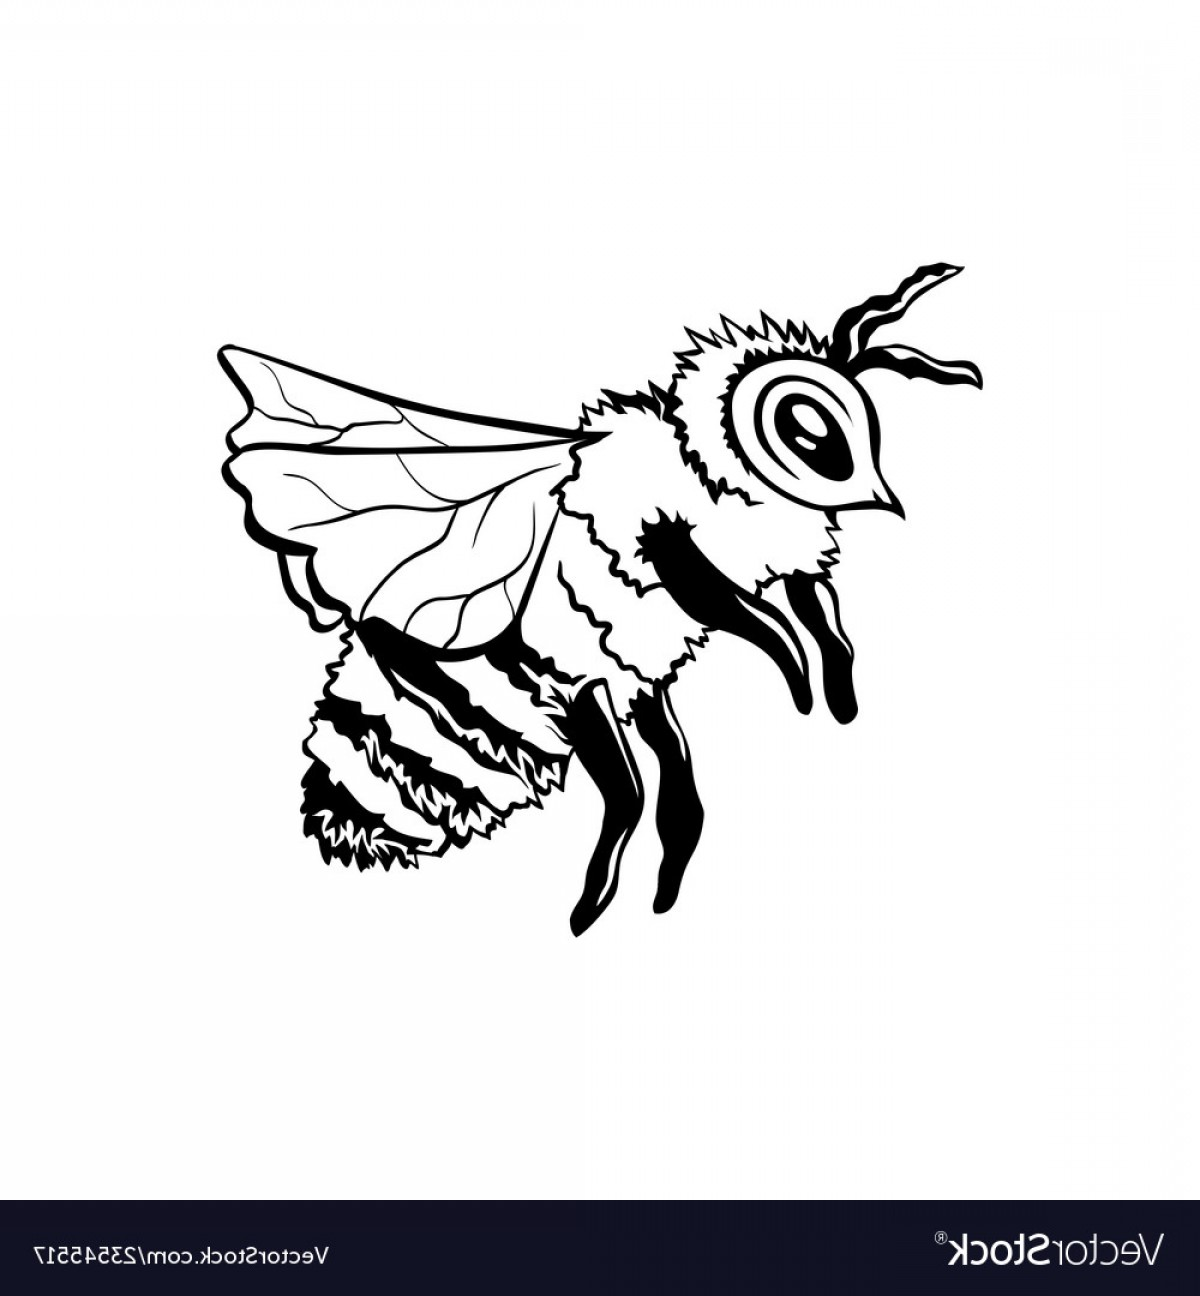 Bee Outline Vector: Black Outline Sketch Of Honey Bee Vector